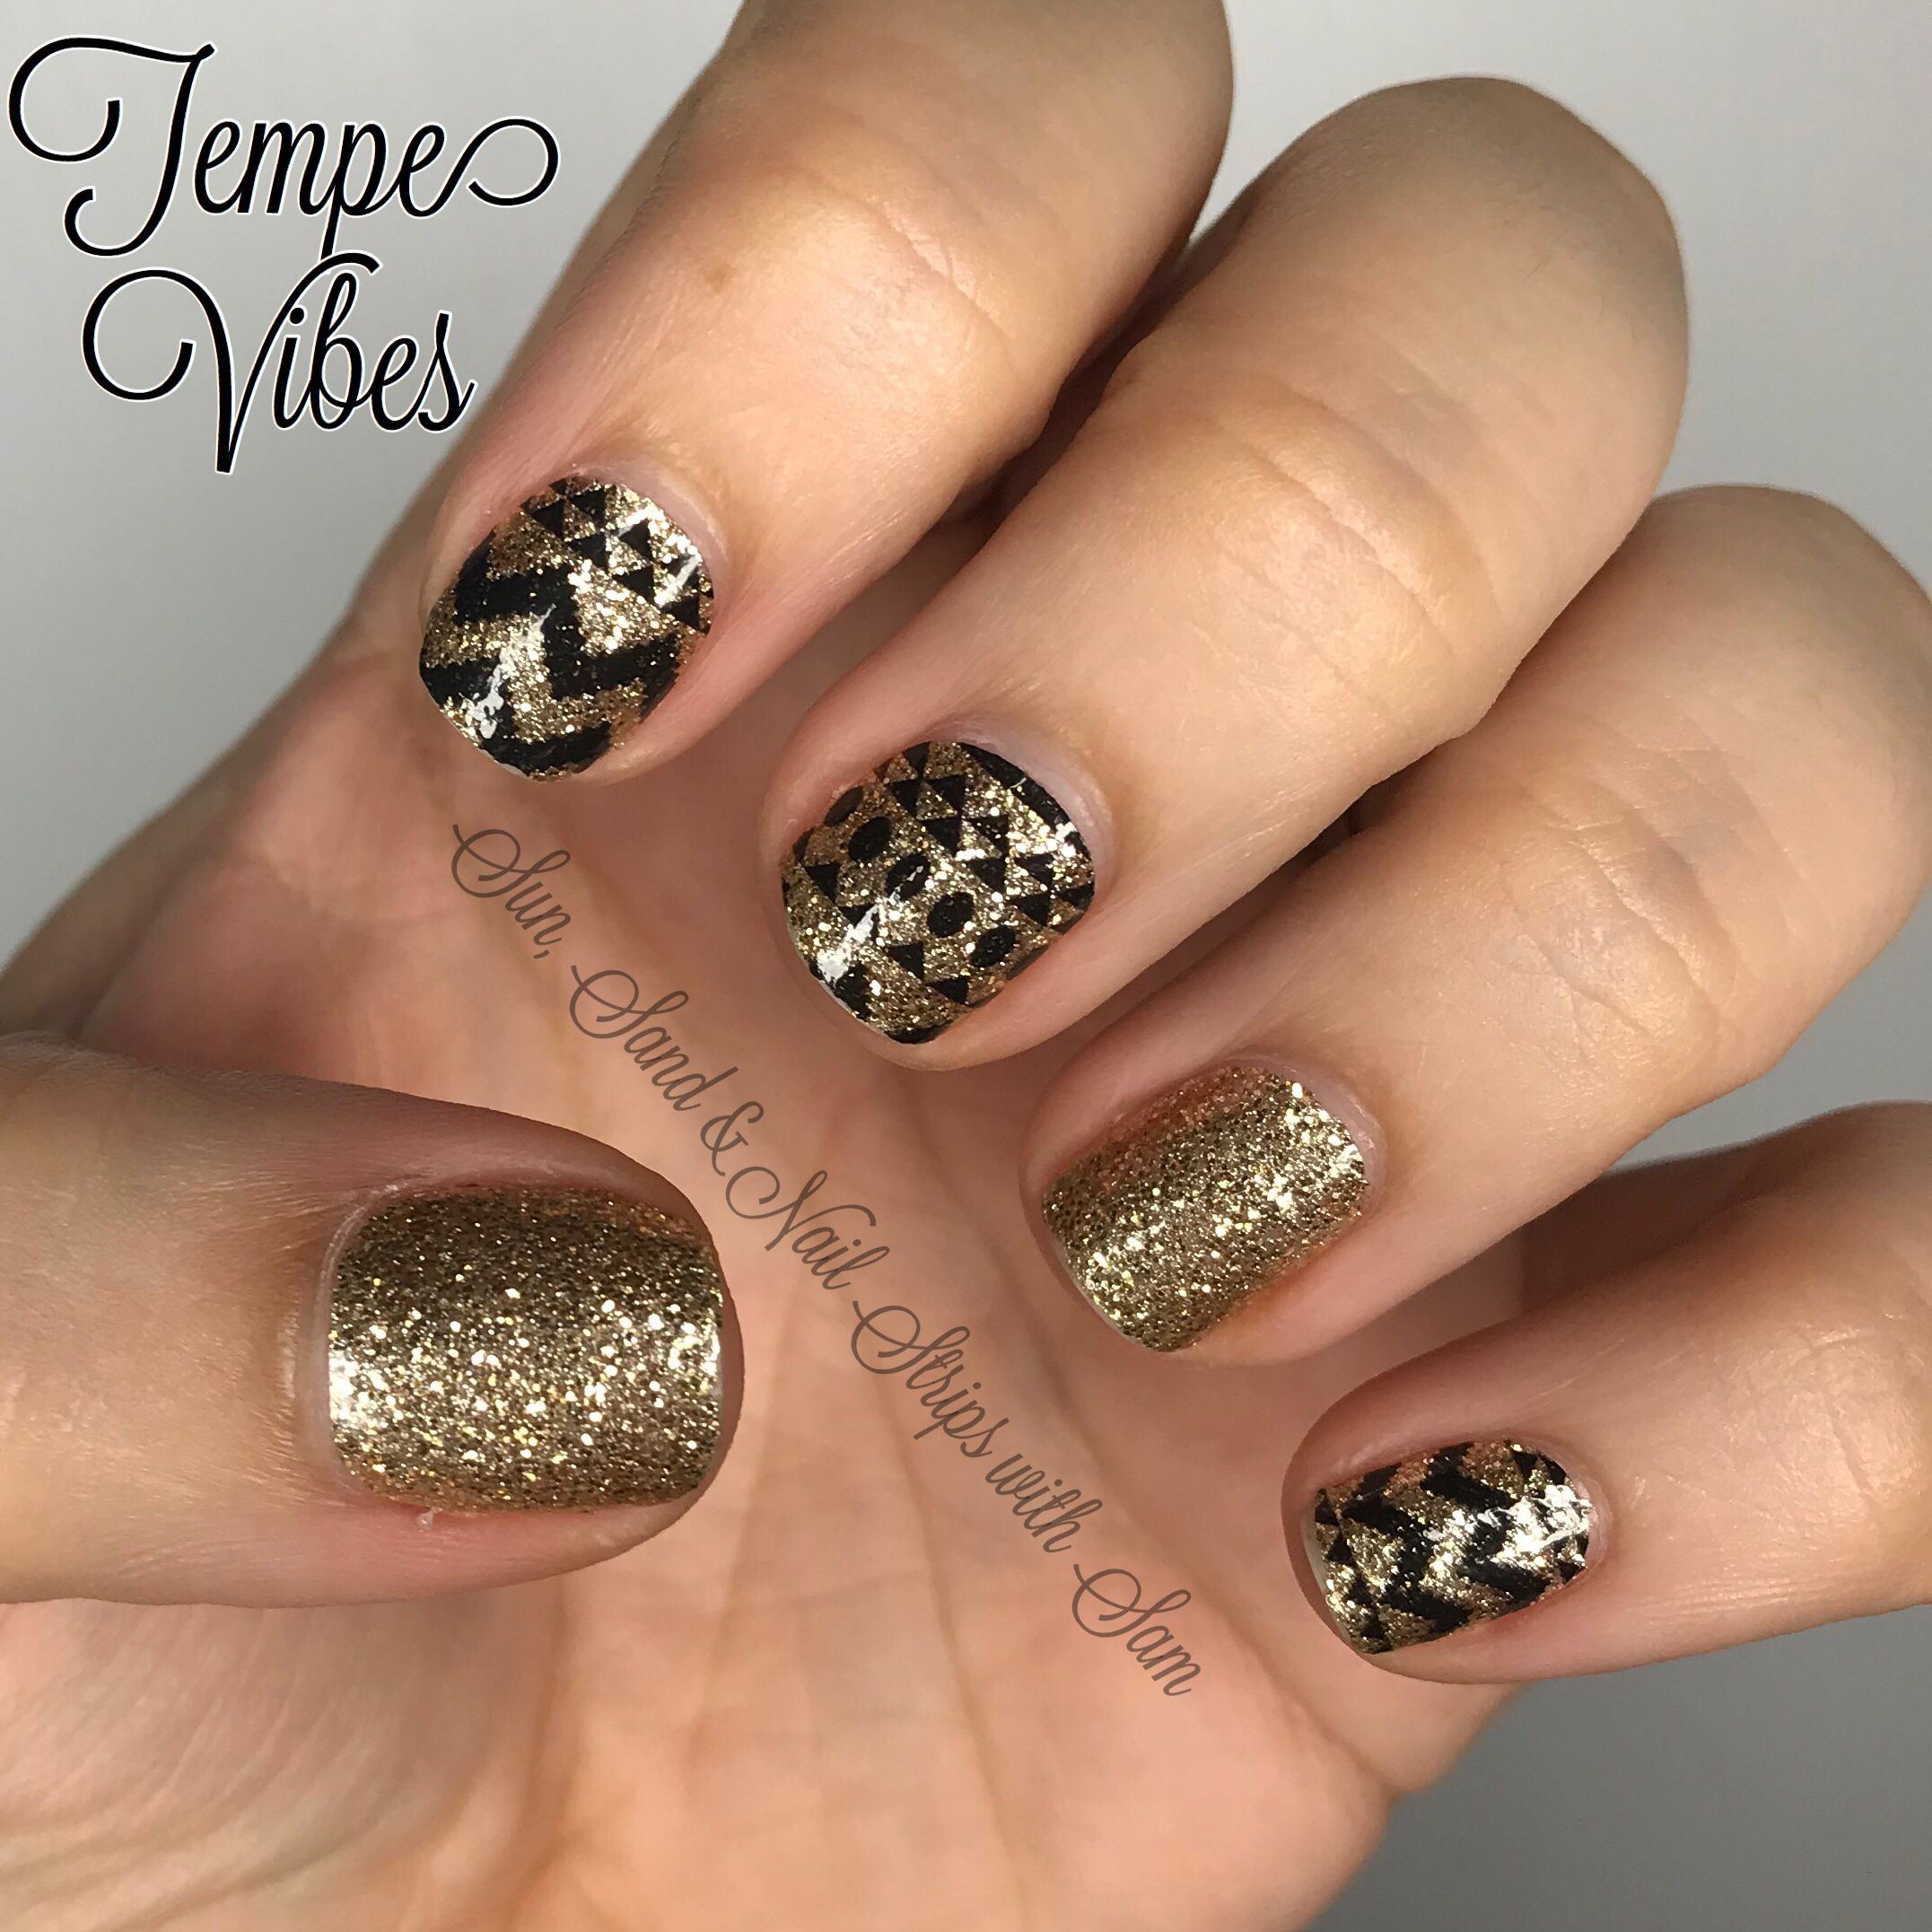 Tempe Vibes by Color Street - gold glitter with a black aztec print ...